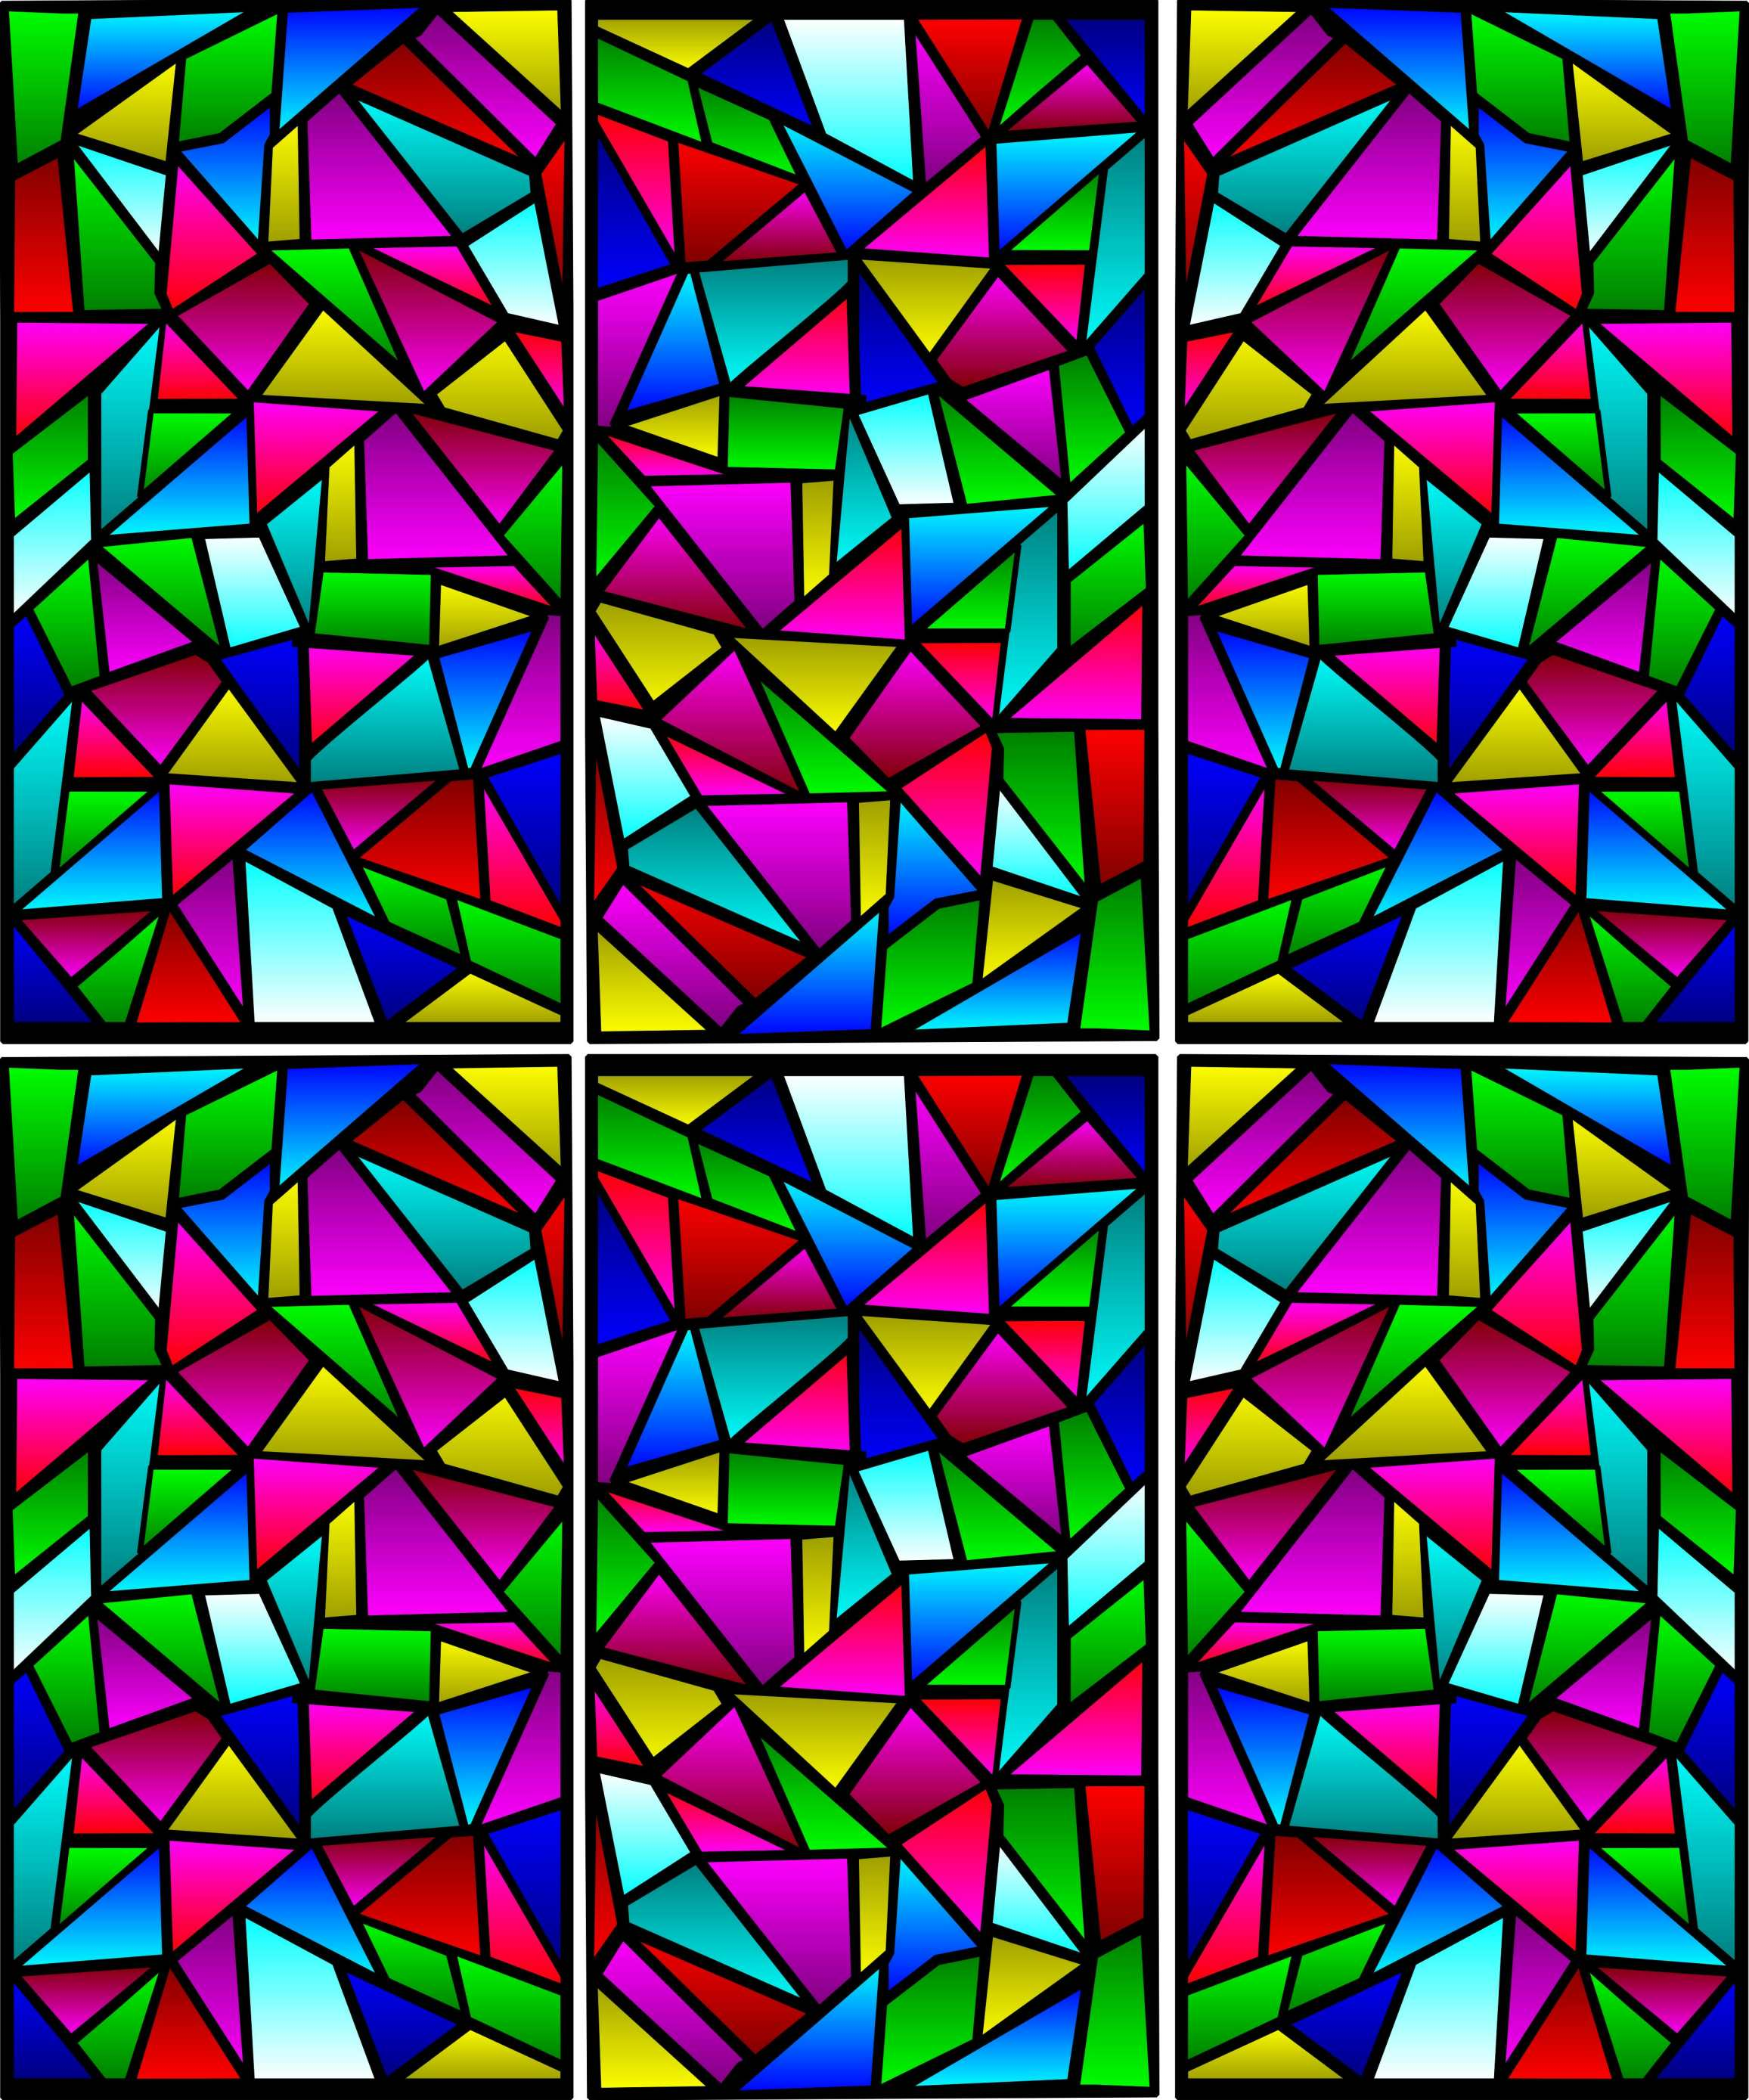 2313x2777 Game Poem 42 Stained Glass Gizmet Game Poems